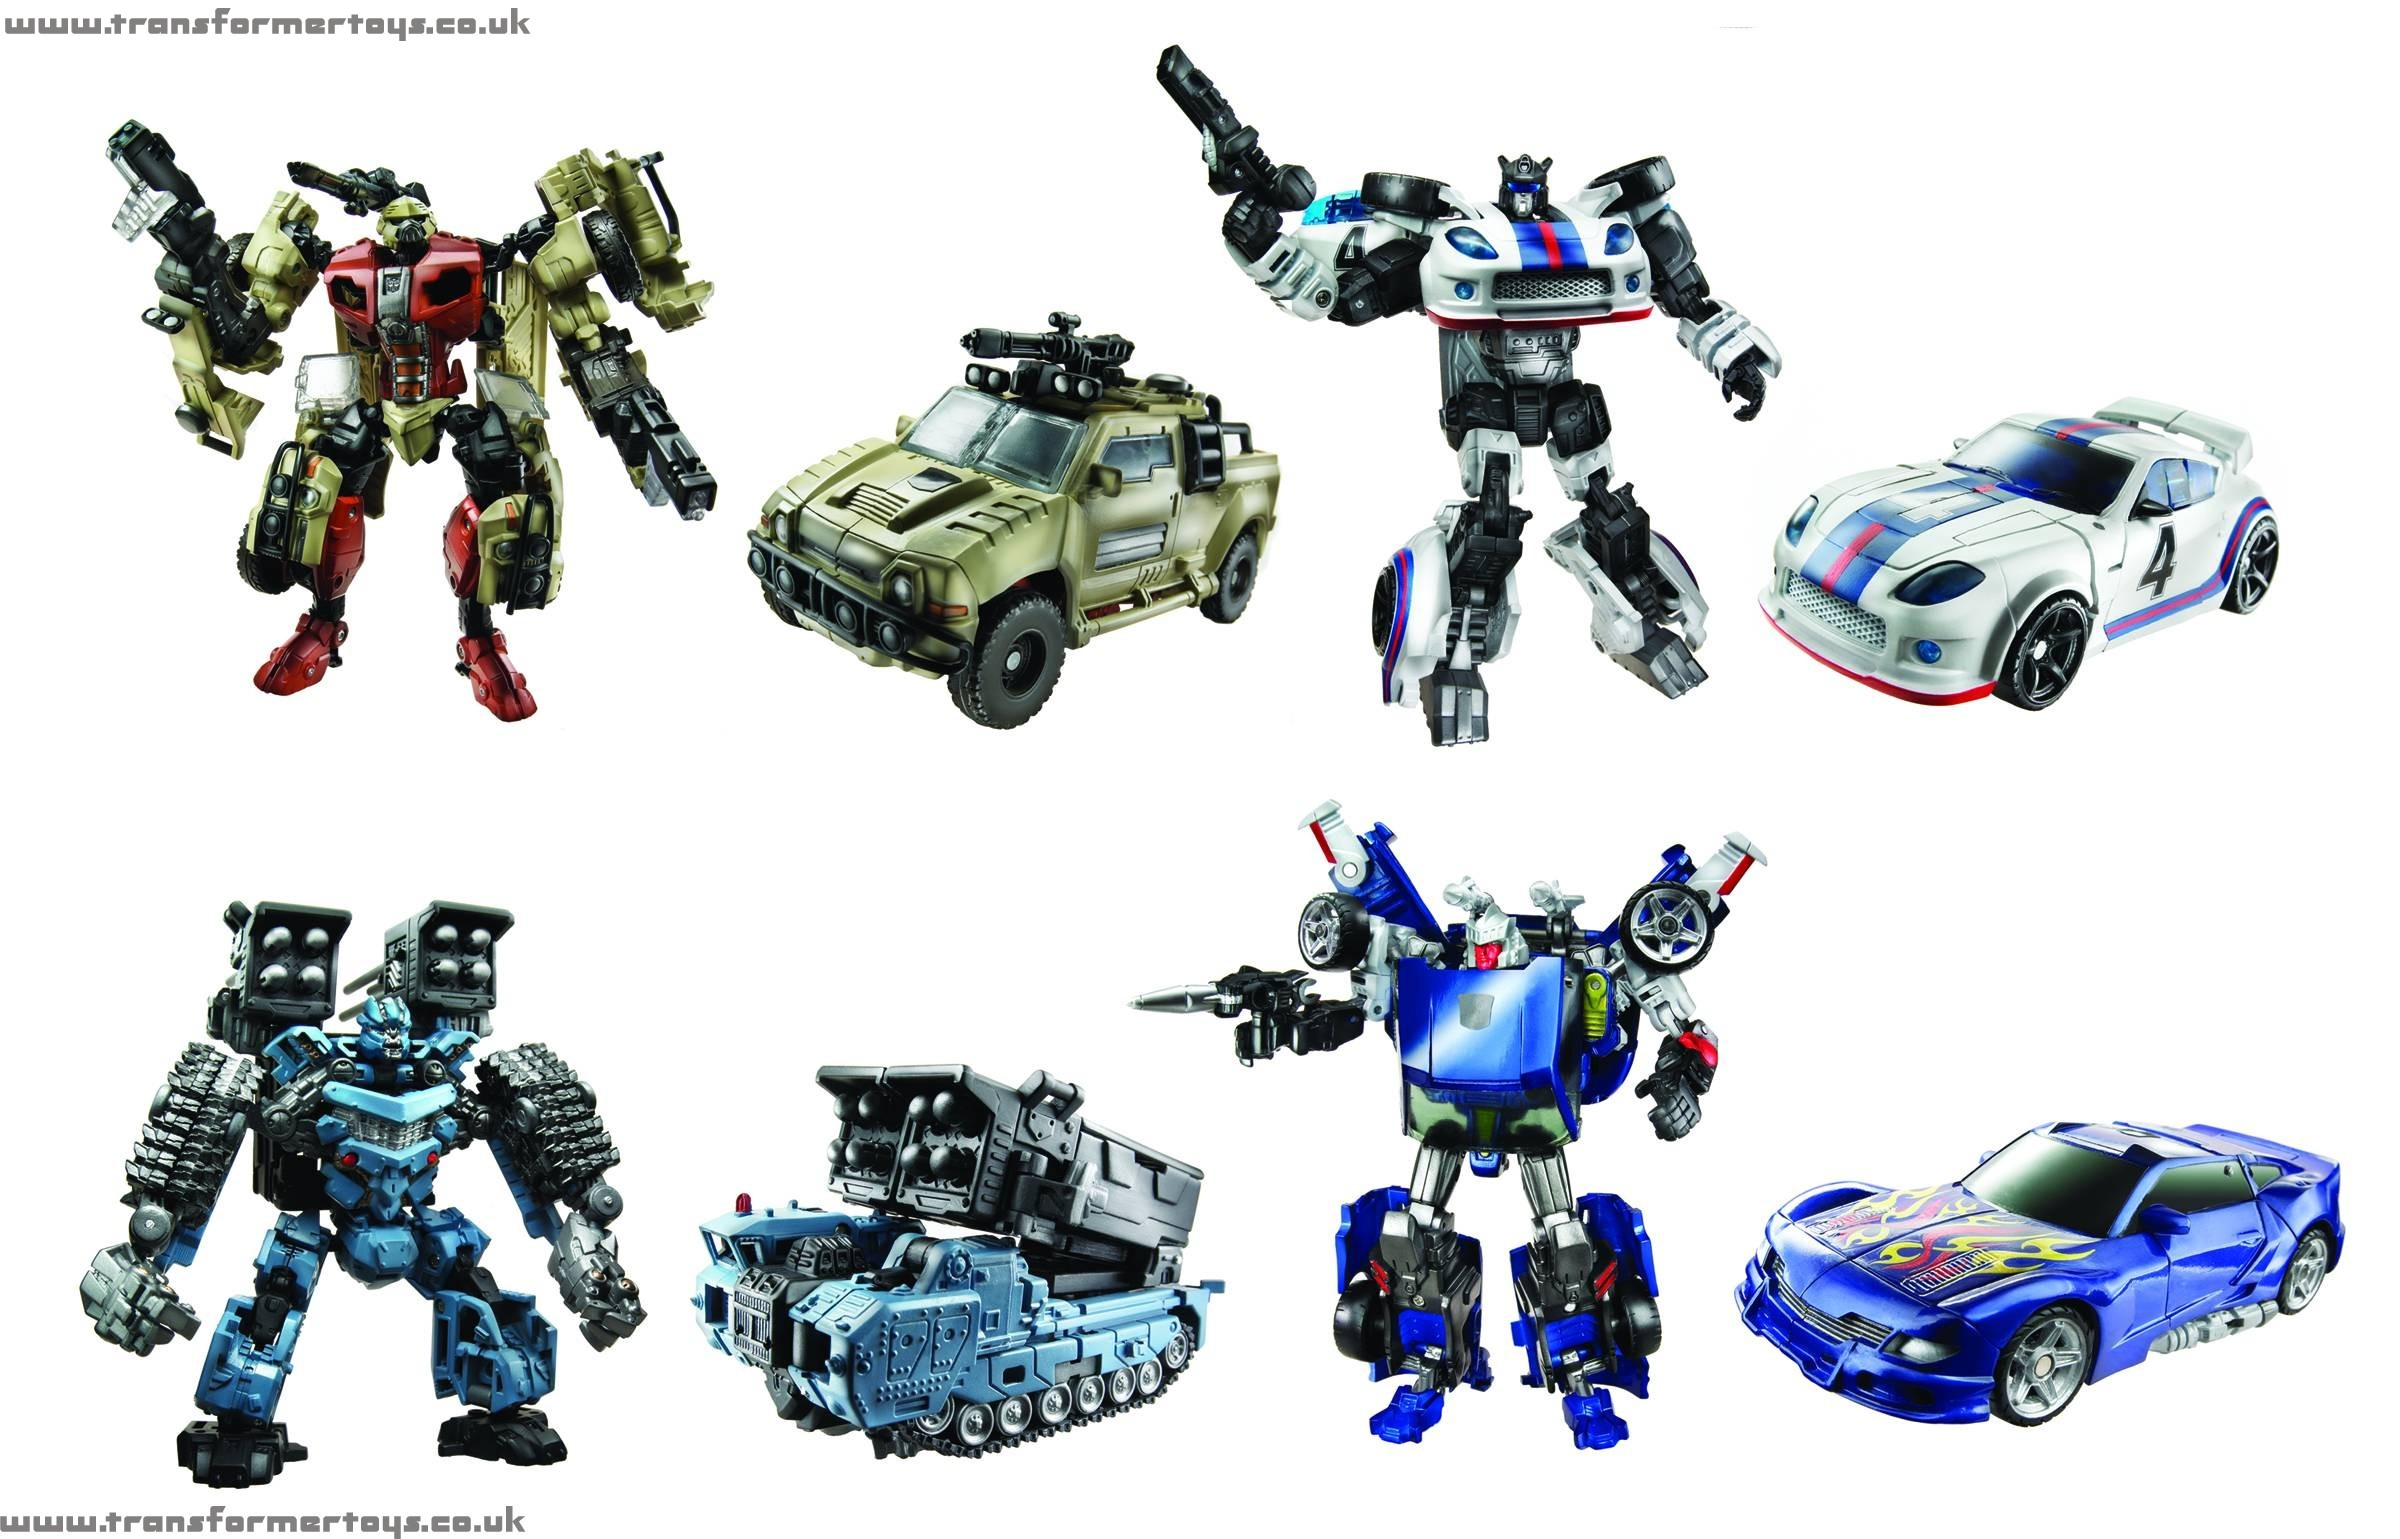 Toys For Boys 5 7 Transformers : Transformers power core combiners tagged news